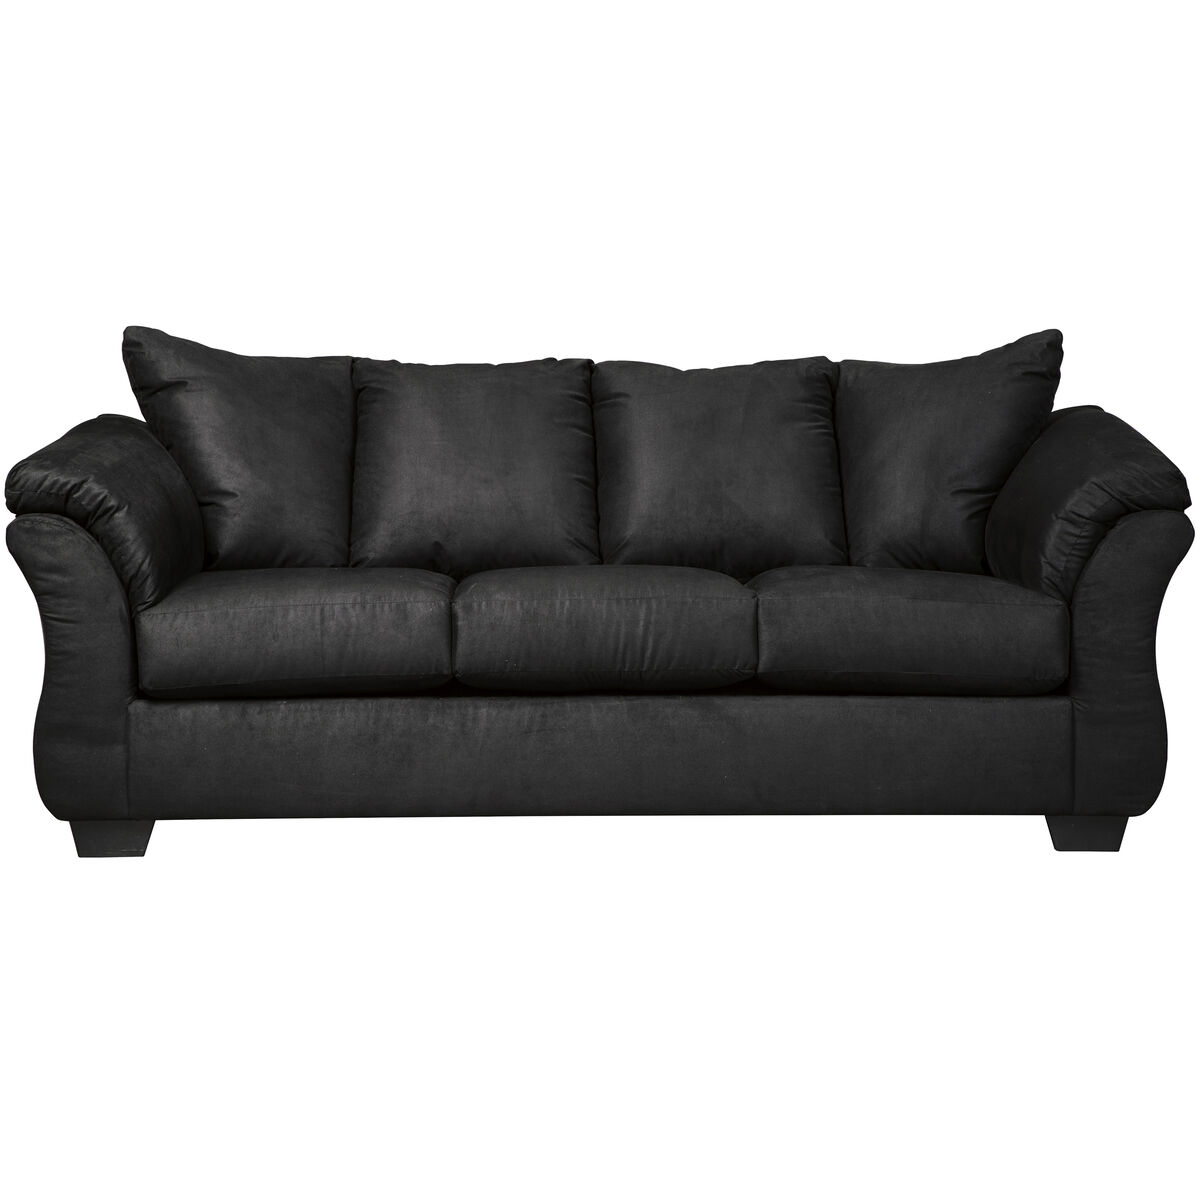 Our Signature Design By Ashley Darcy Sofa In Black Microfiber Is On Now